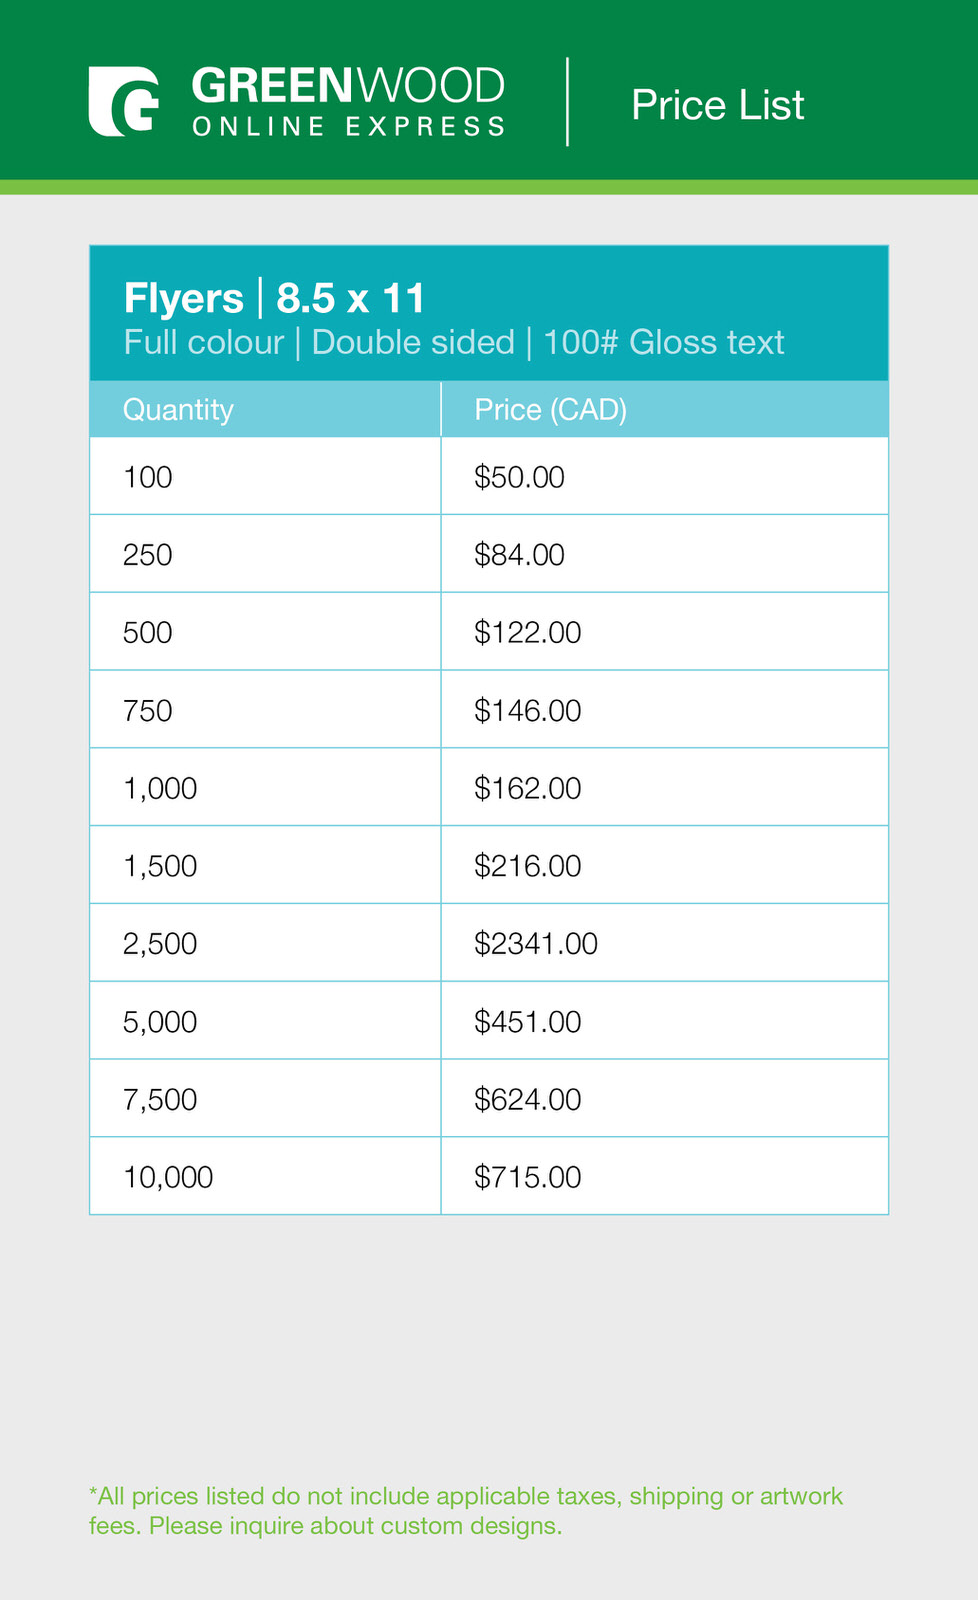 Greenwood flyers colour doubled sided price list.jpg